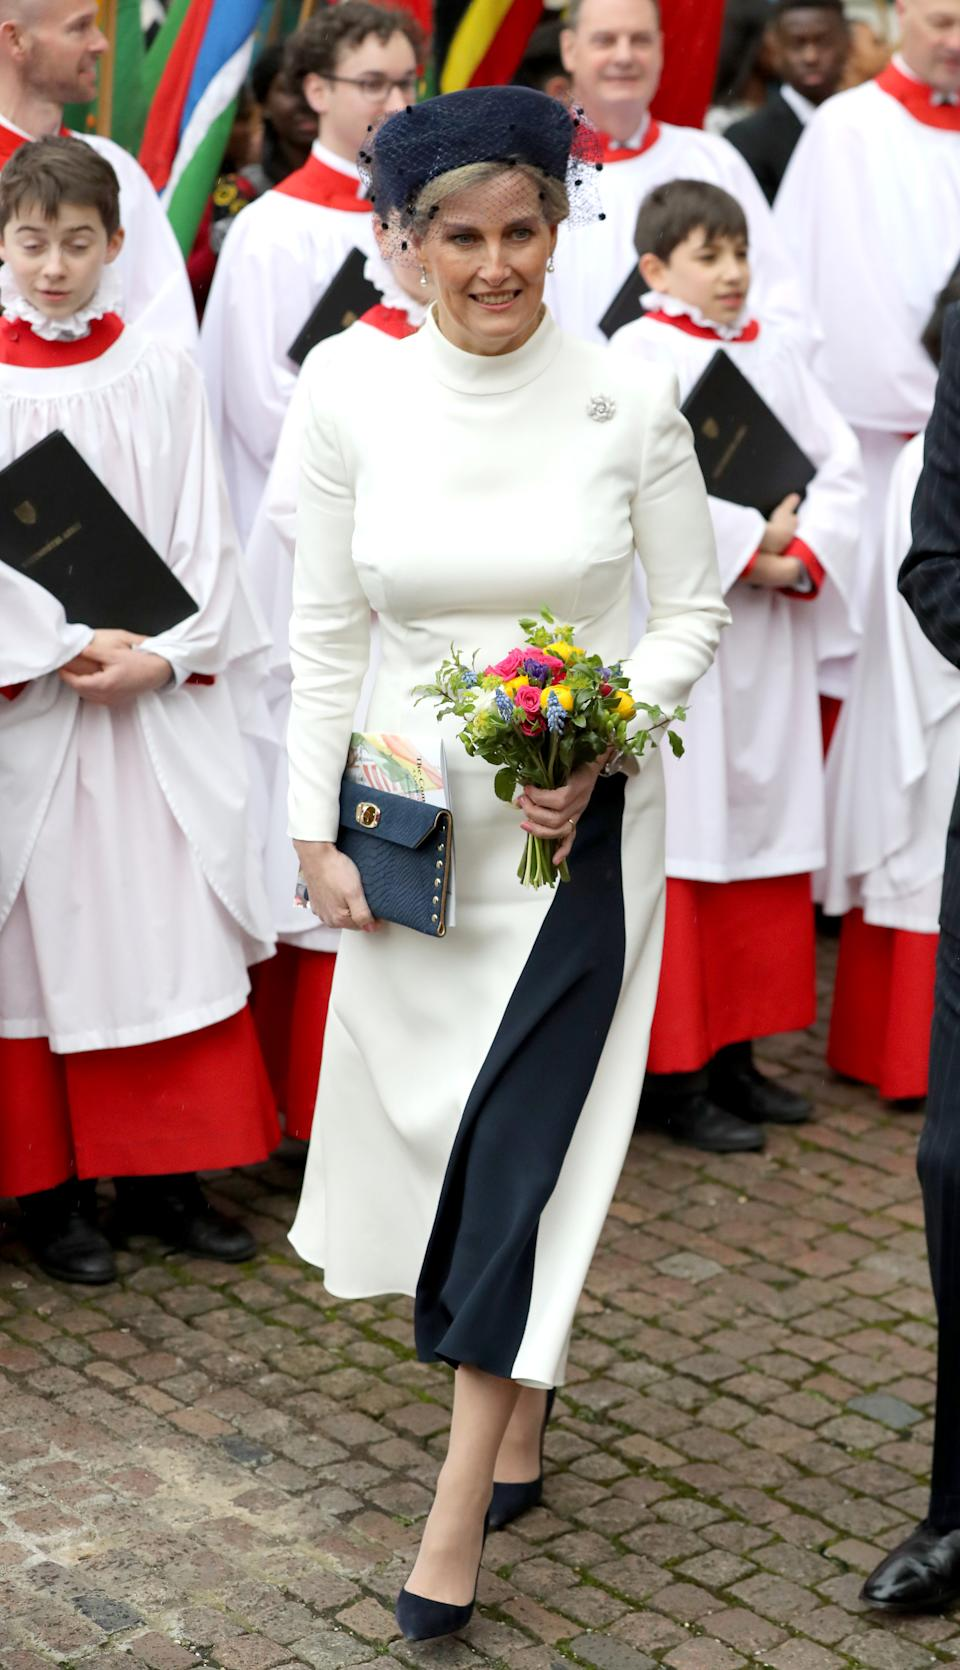 LONDON, ENGLAND - MARCH 09: Sophie, Countess of Wessex departs the Commonwealth Day Service 2020 at Westminster Abbey on March 09, 2020 in London, England. The Commonwealth represents 2.4 billion people and 54 countries, working in collaboration towards shared economic, environmental, social and democratic goals. (Photo by Chris Jackson/Getty Images)